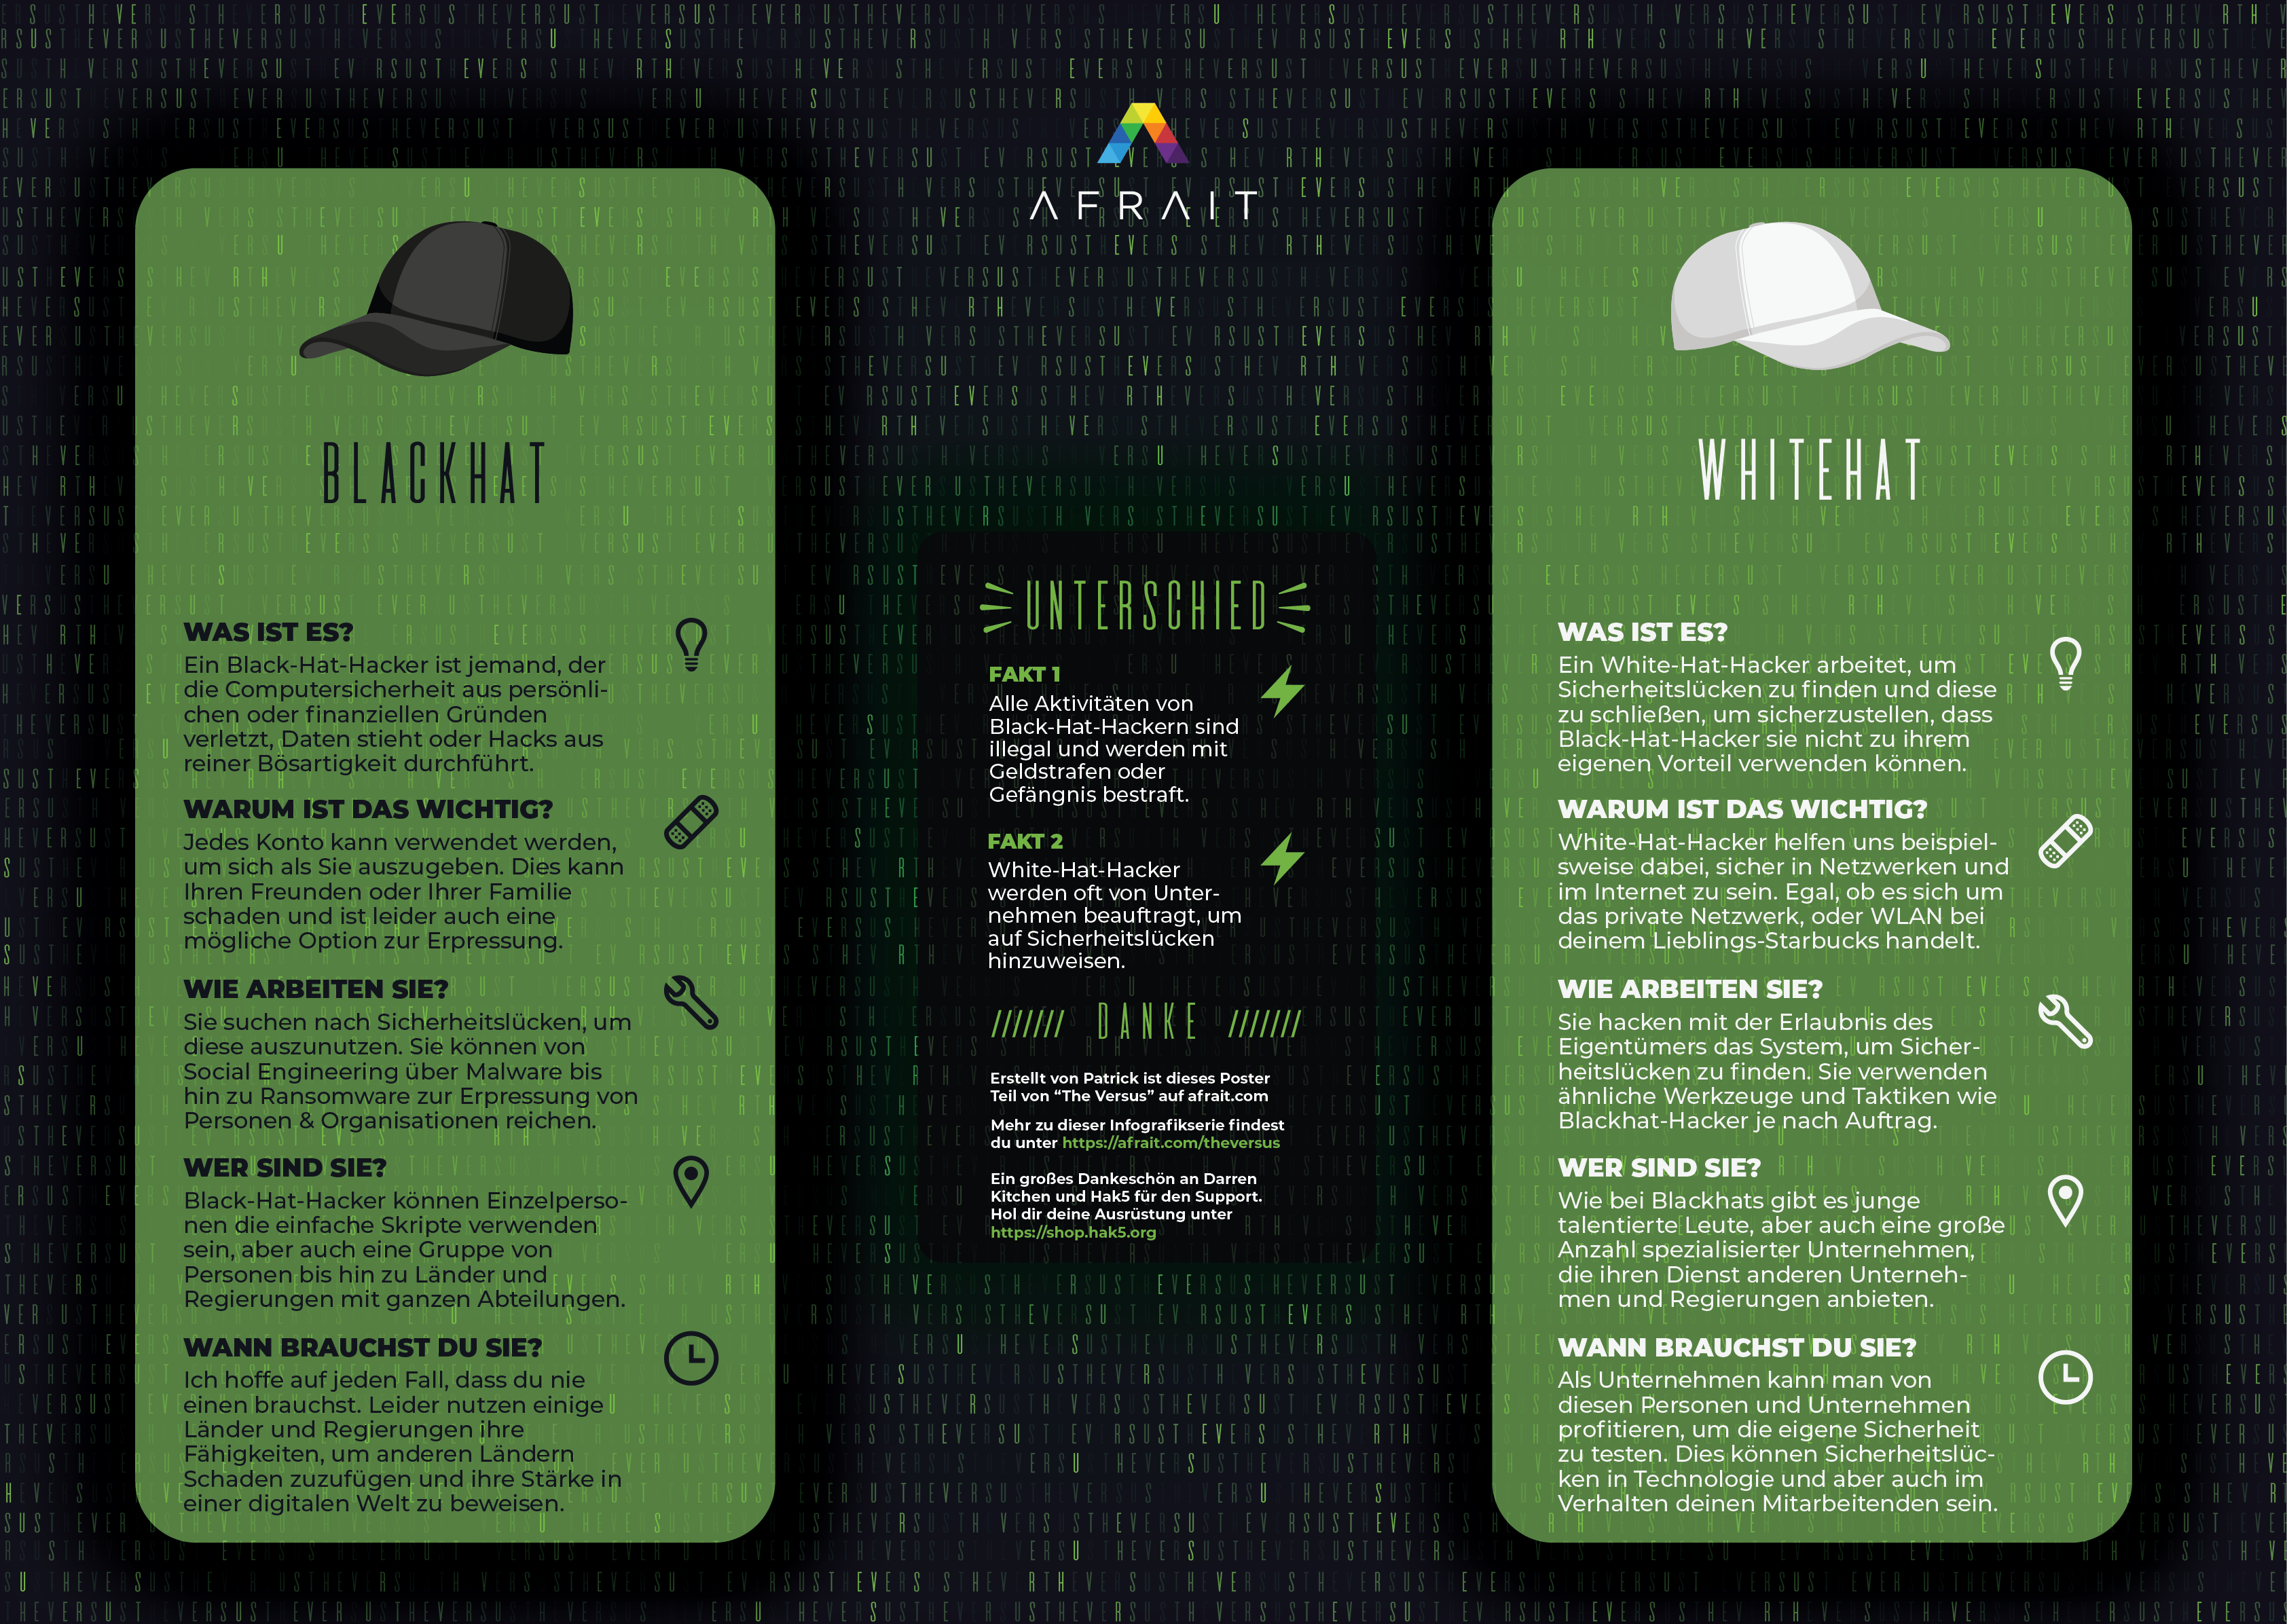 Blackhat Versus Whitehat German